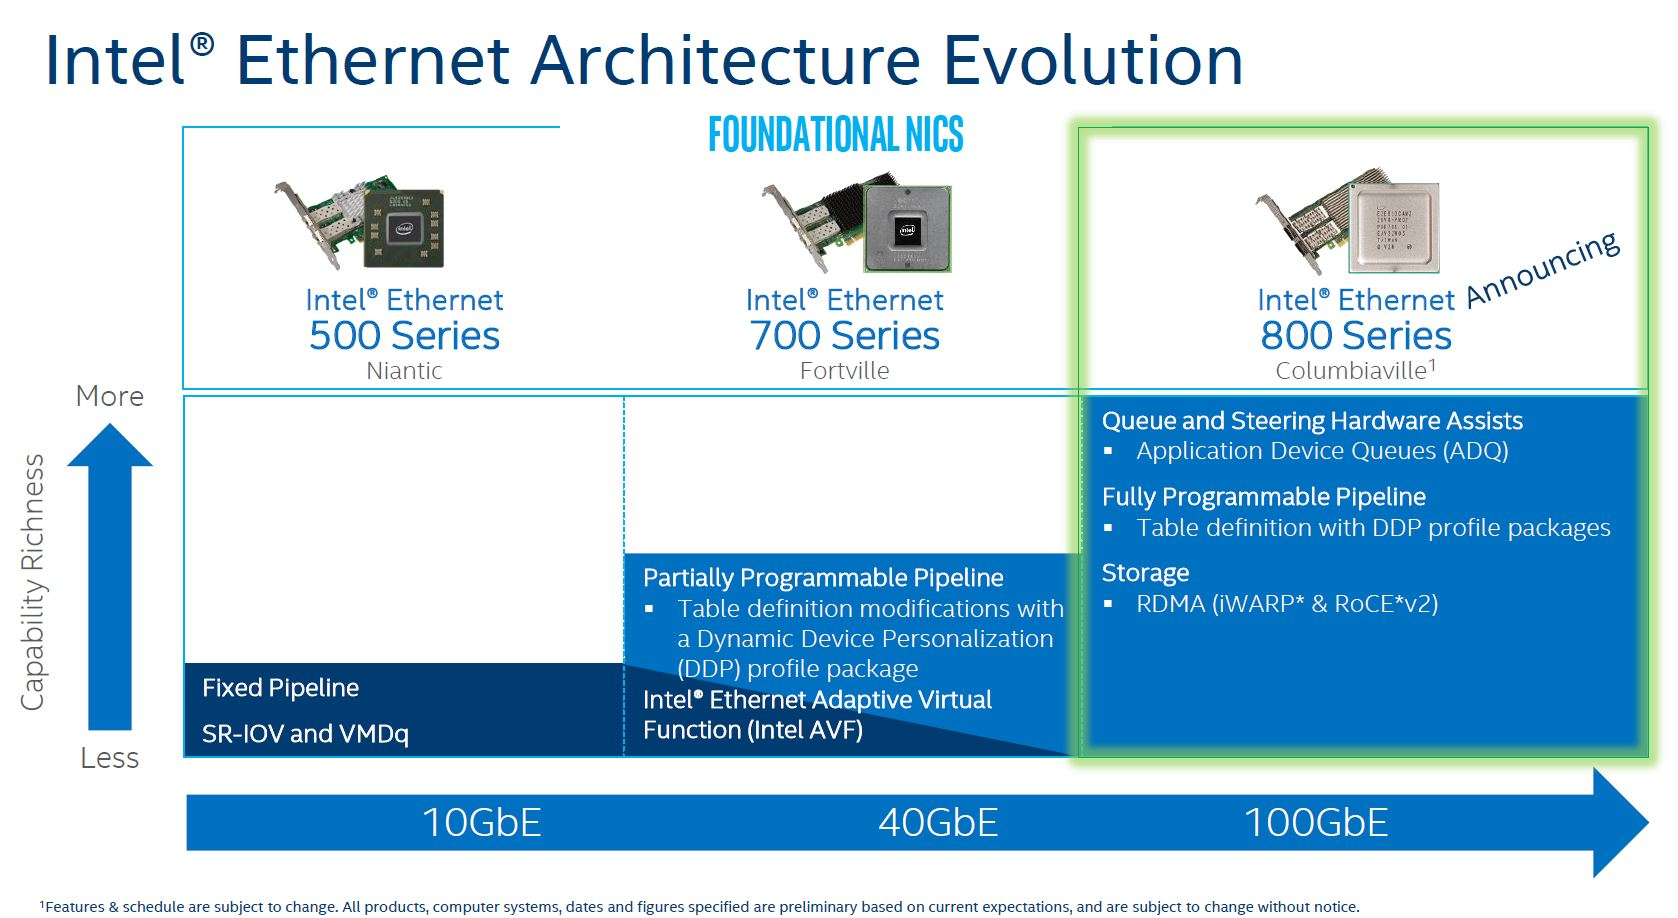 Intel Ethernet 10 To 100GbE Evolution